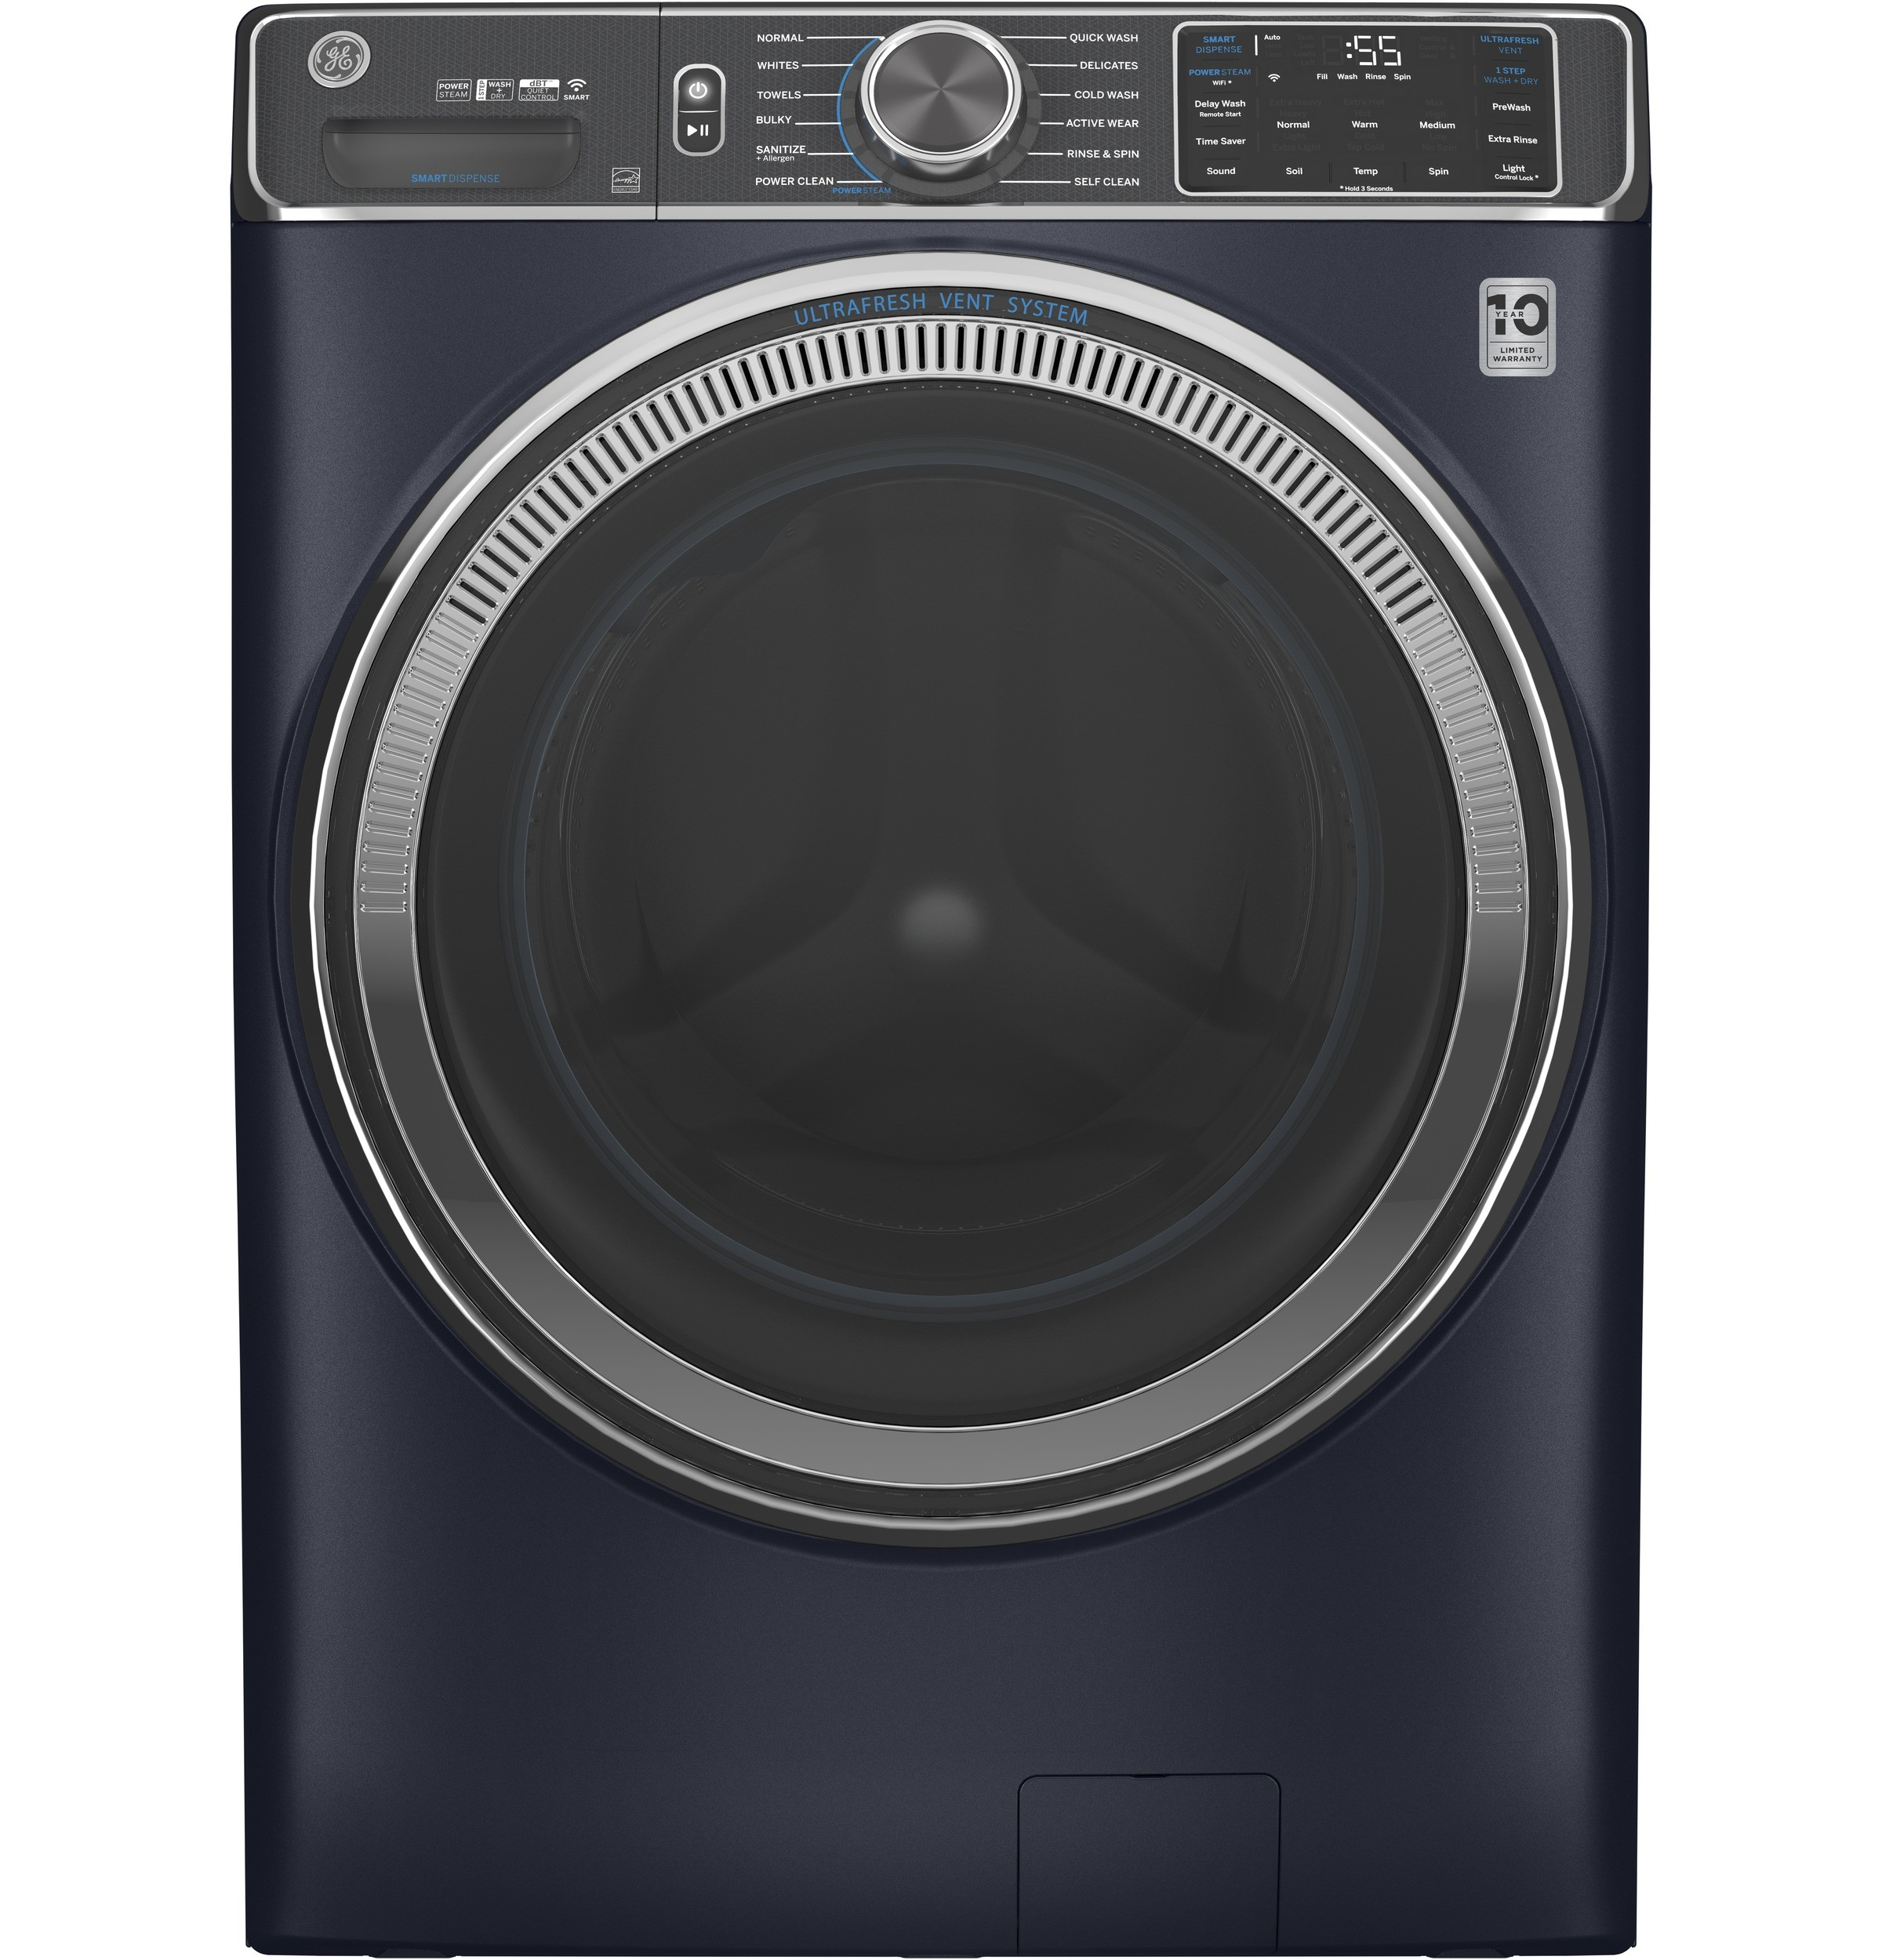 Washers, Dryers, Refrigerators, Washer/Dryers & More by GE, Samsung & More Ext. Retail $30,766, Charlotte, NC